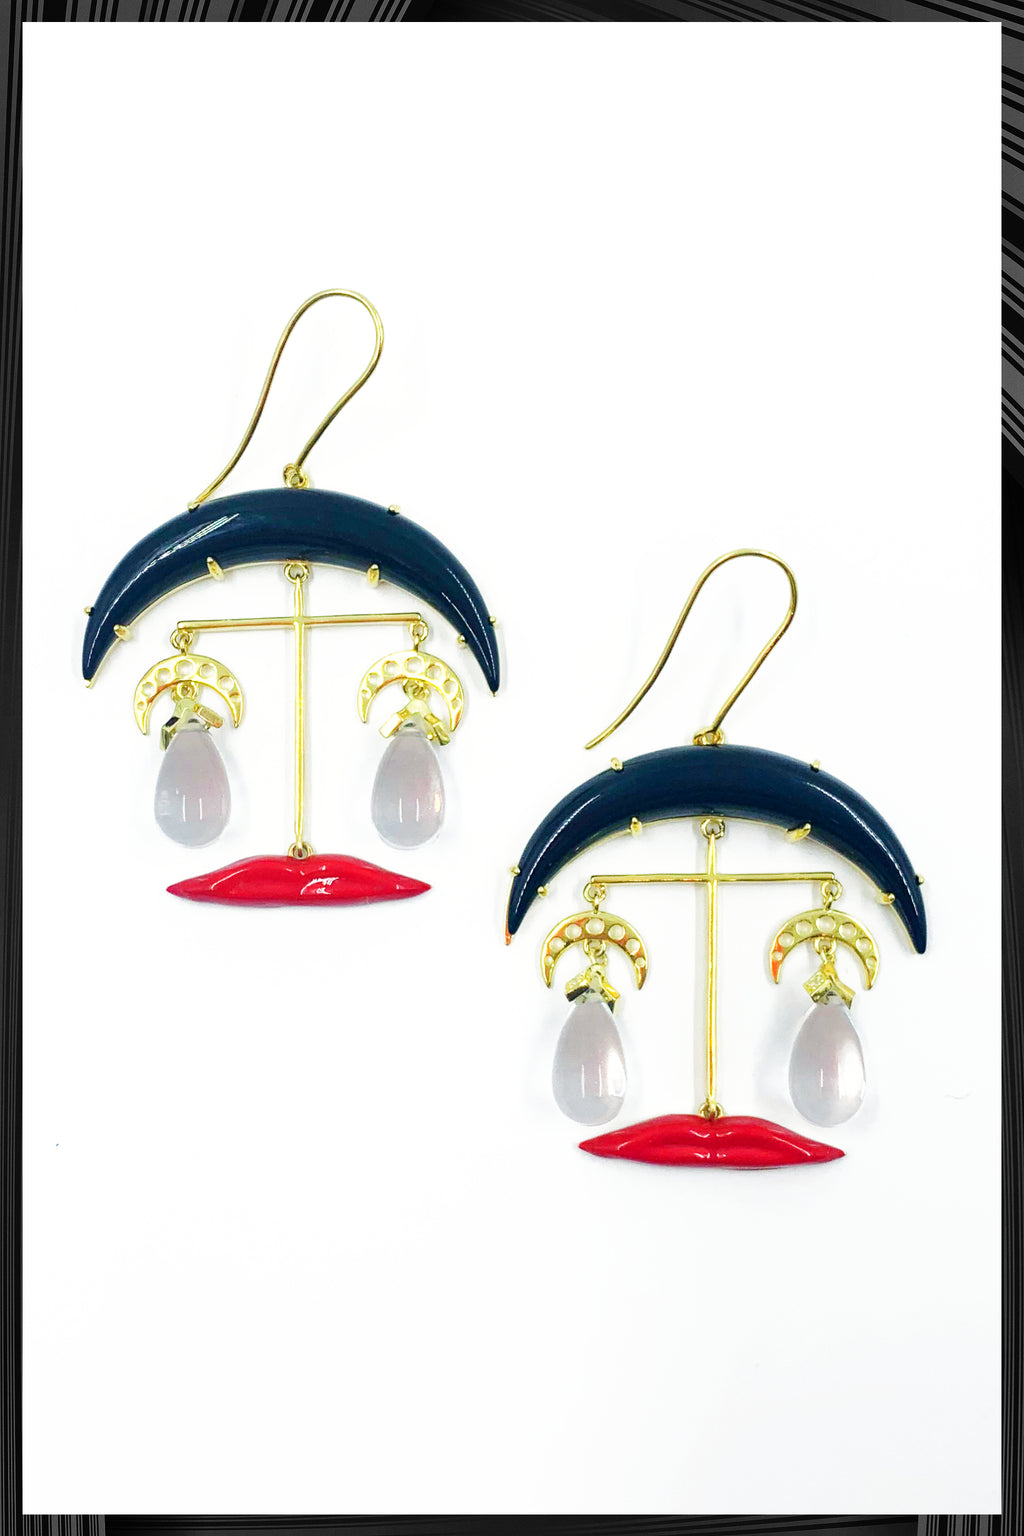 Mobile Earrings | Free Delivery - Quick Shipping